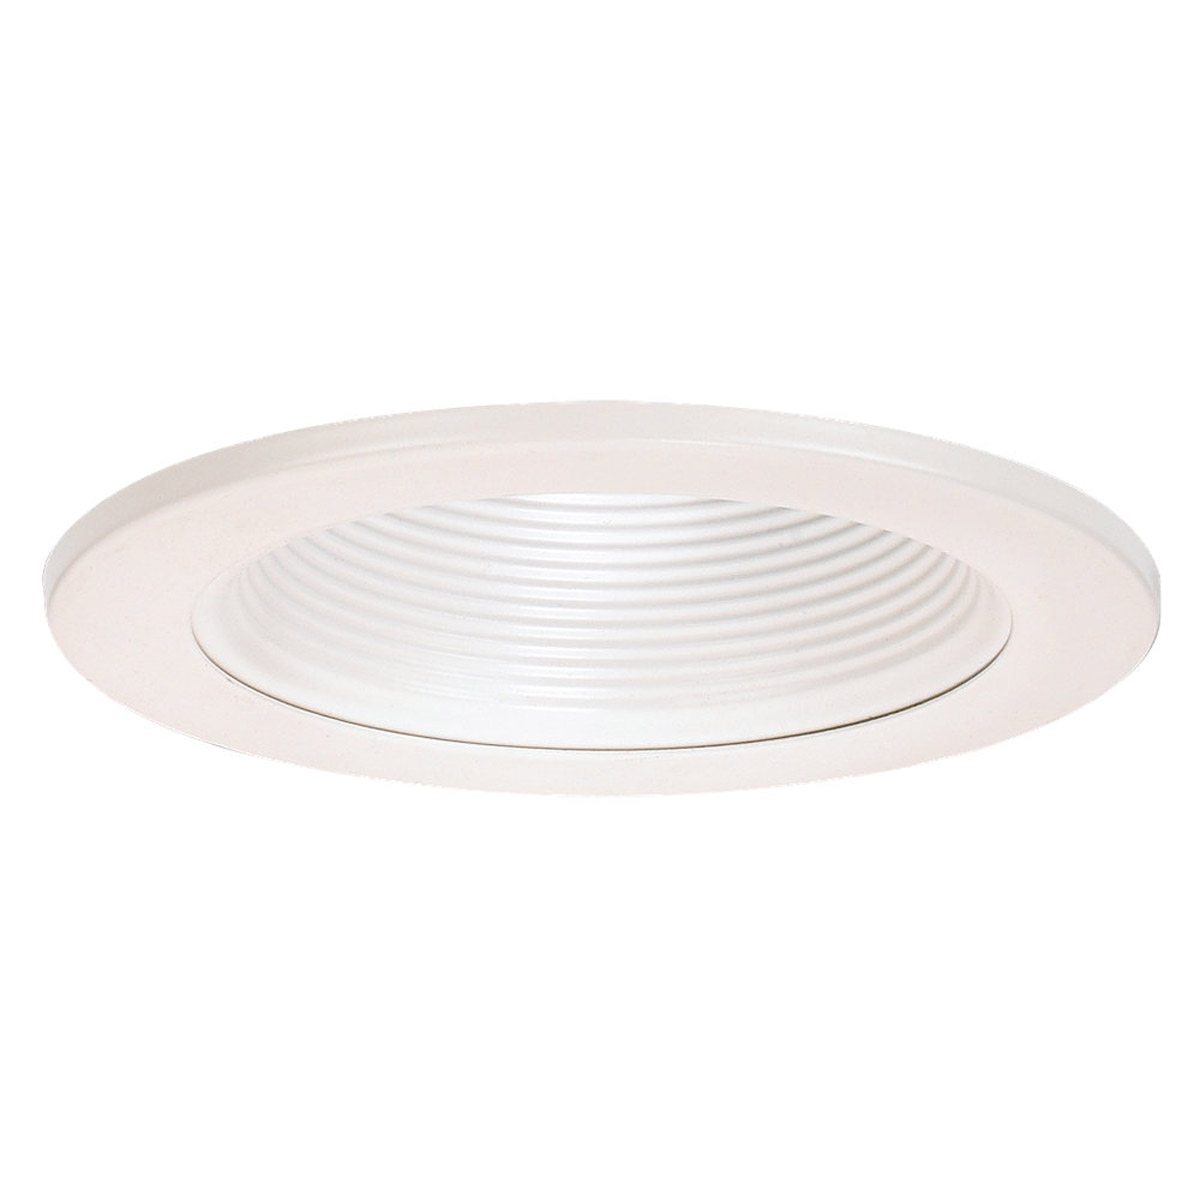 Sea Gull Lighting Signature Recessed Trim Only in White 1226AT-14